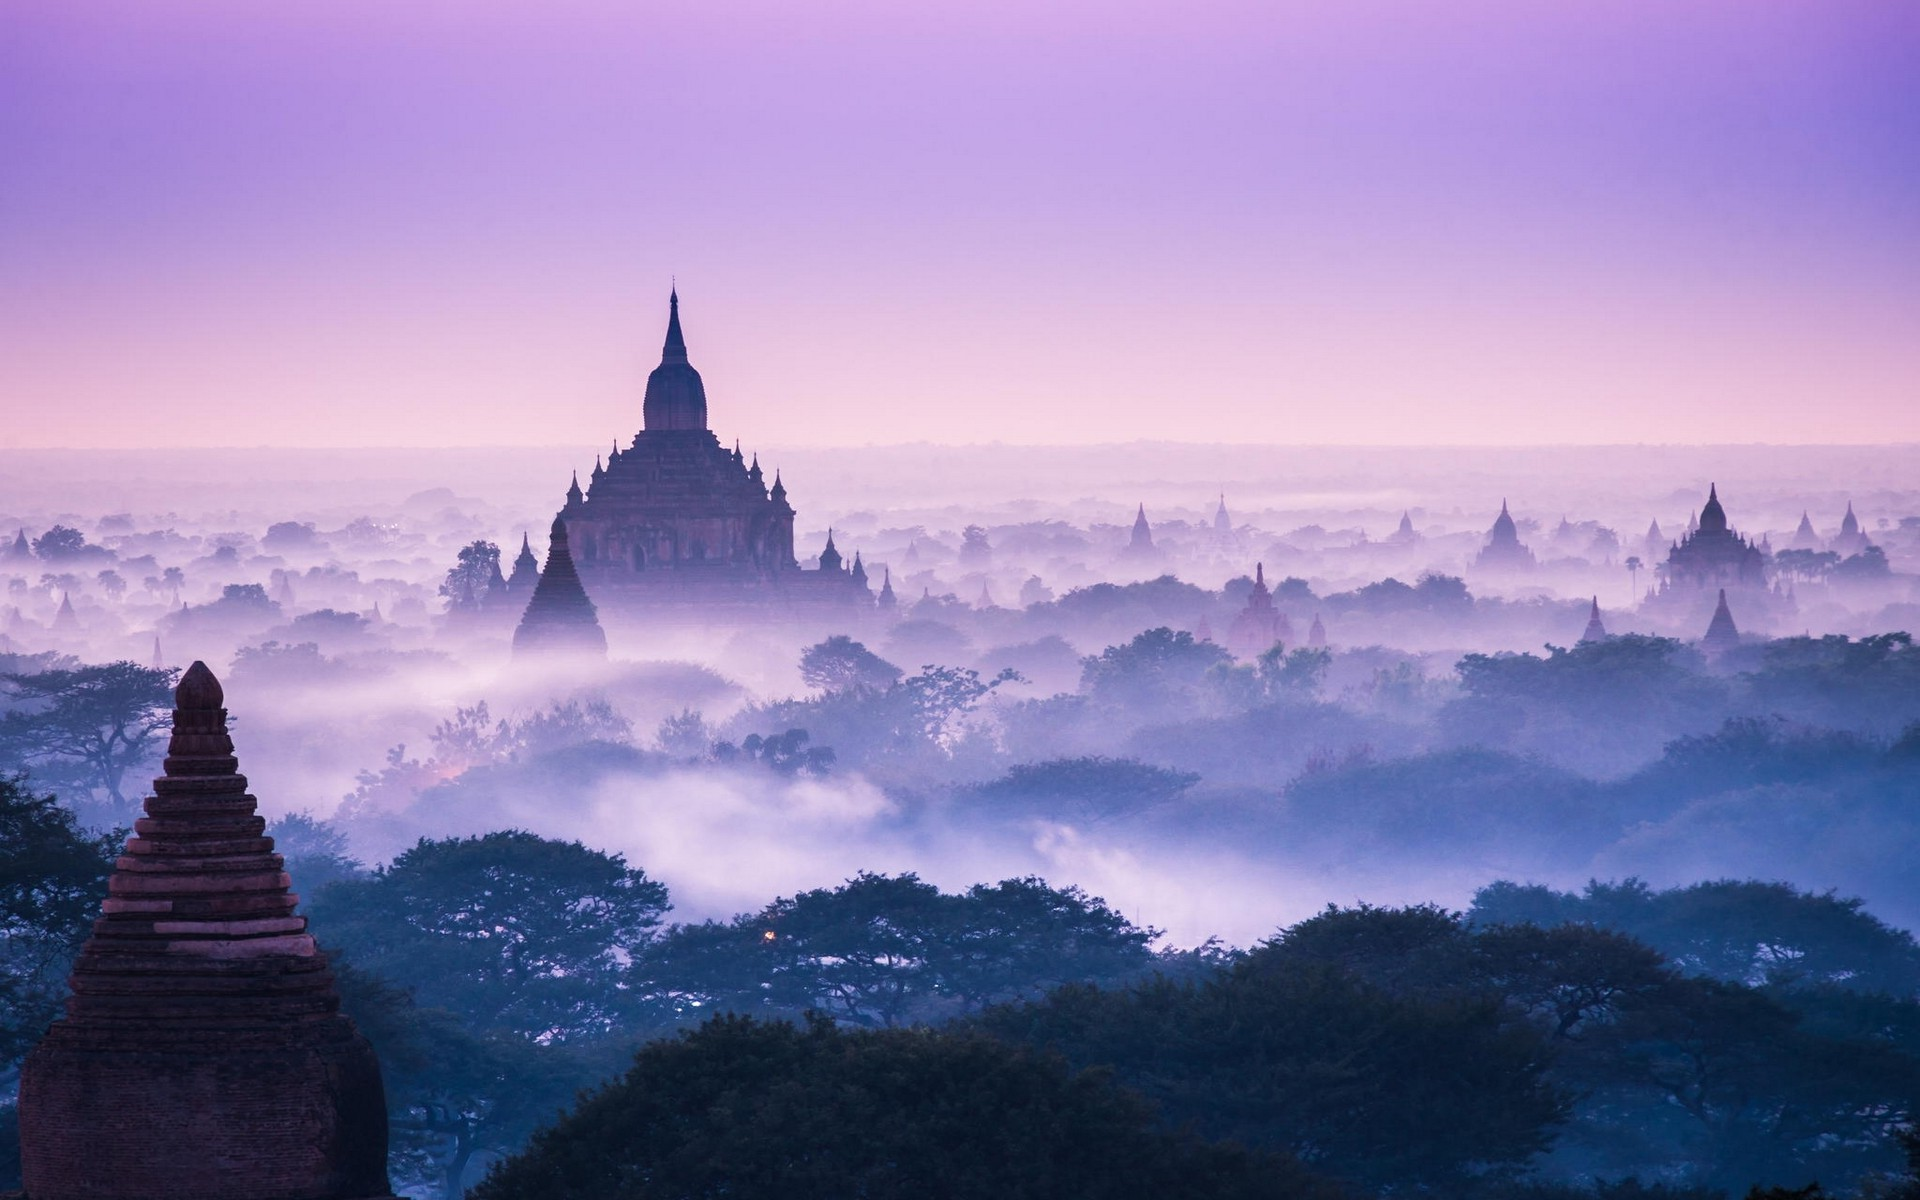 3d Hd Scenery Wallpapers Nature Landscape Temple Mist Trees Asia Morning